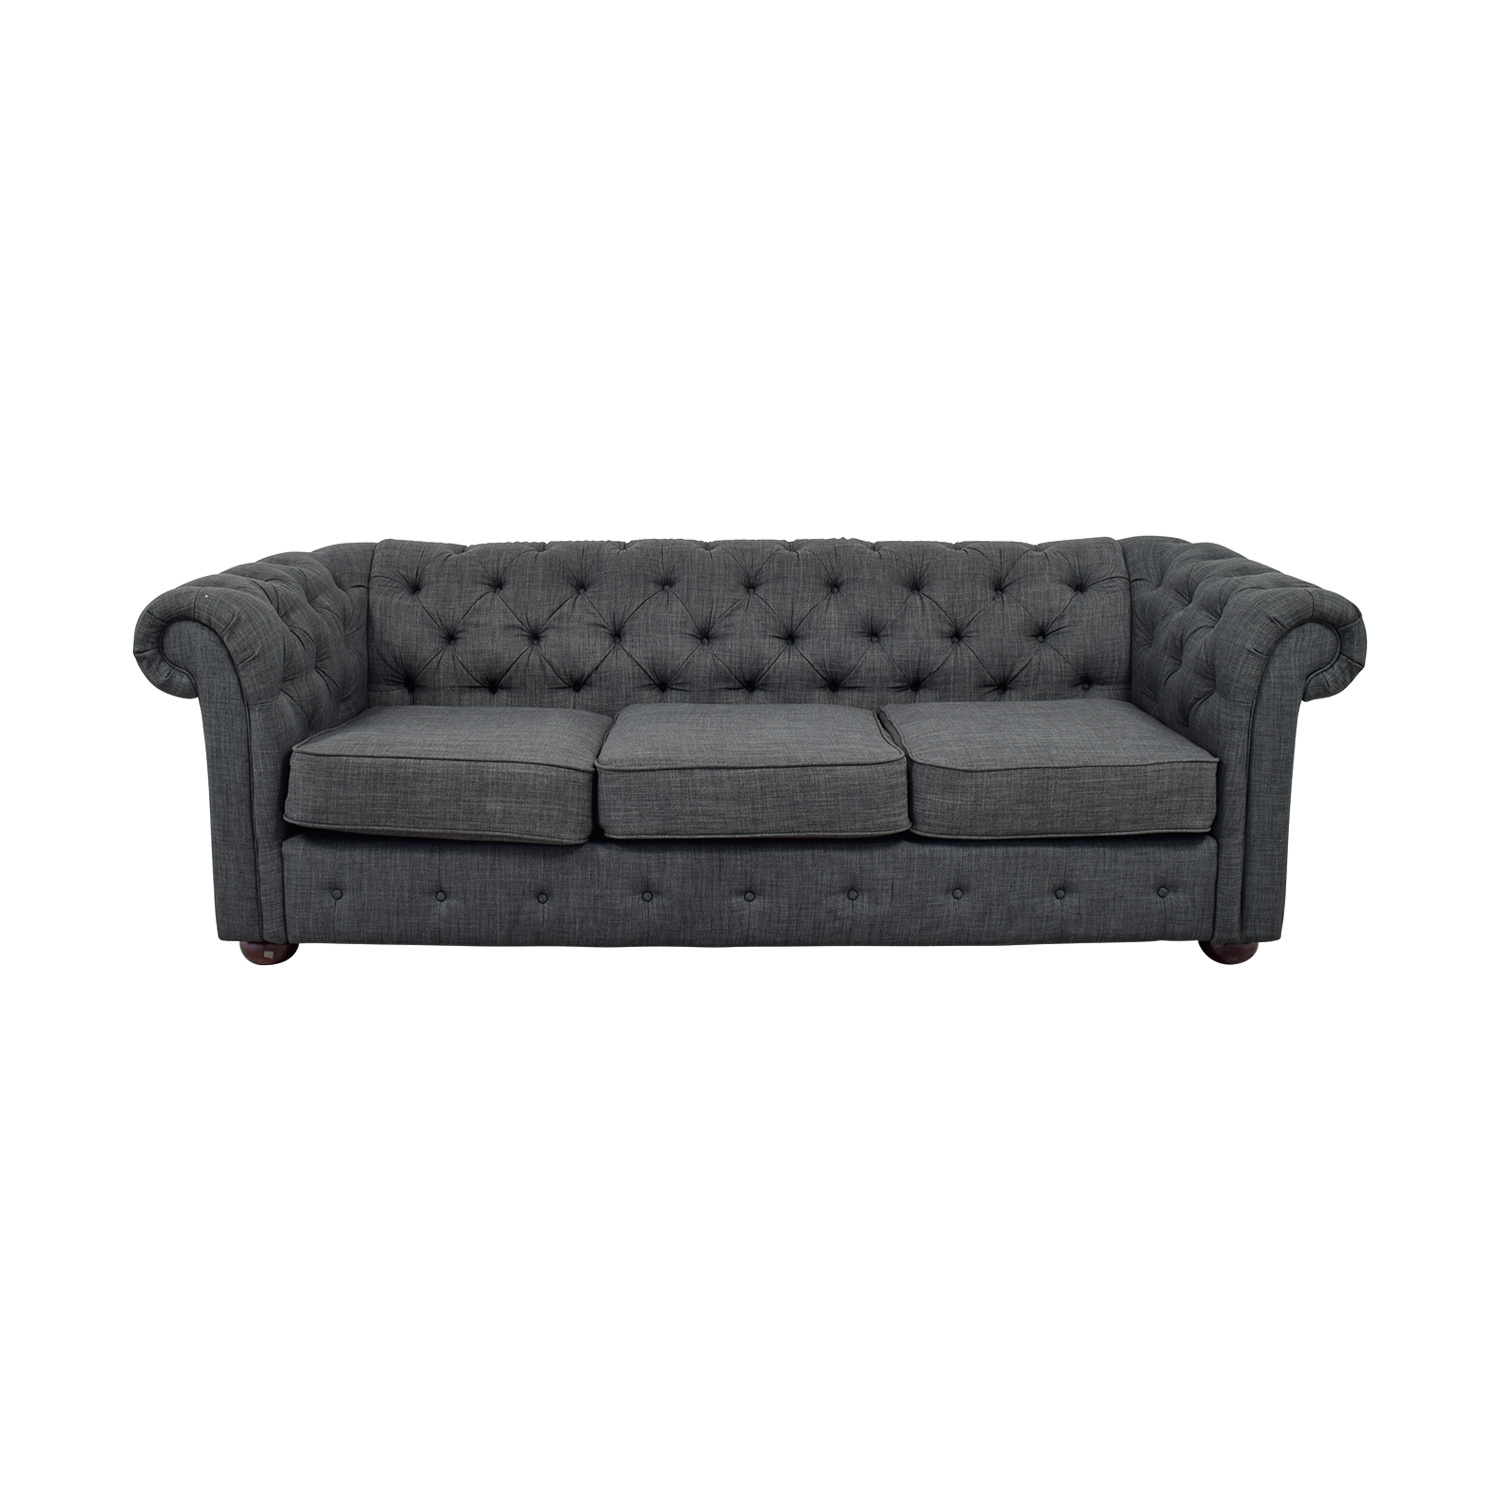 Greenworld Furniture Company Greenworld Chesterfield Style Charcoal Sofa  Coupon ...